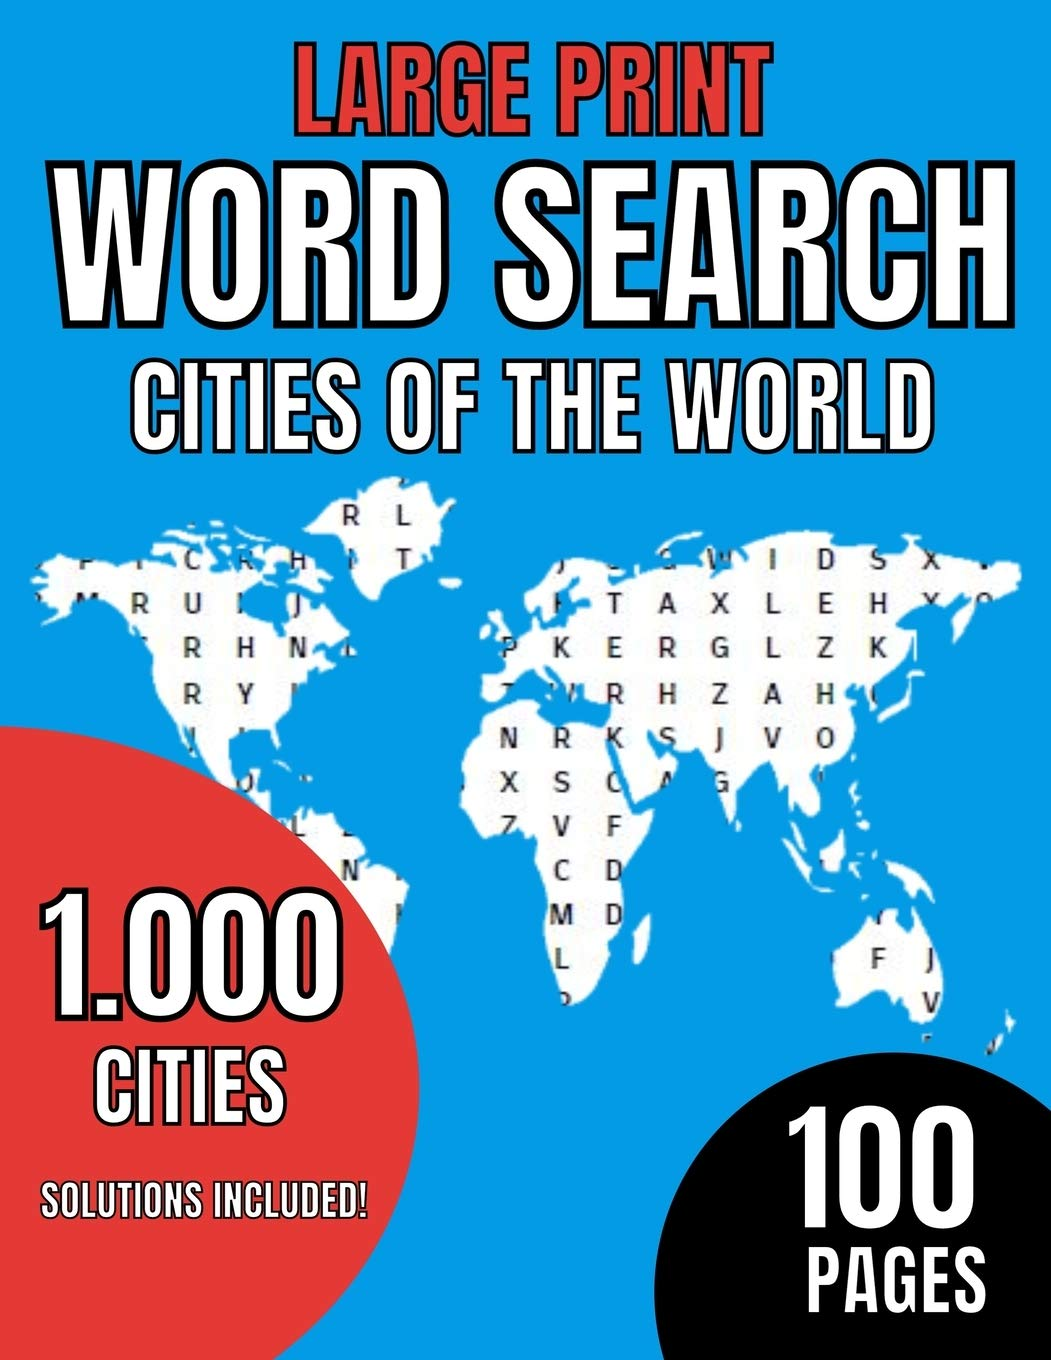 Large Print. Word Search Cities of the World. 1000 cities. Solutions Included. 100 Pages: World Book - For Seniors, adults and kids- Cultural - ... - searches - 8,5 x 11 Inch - hours of fun